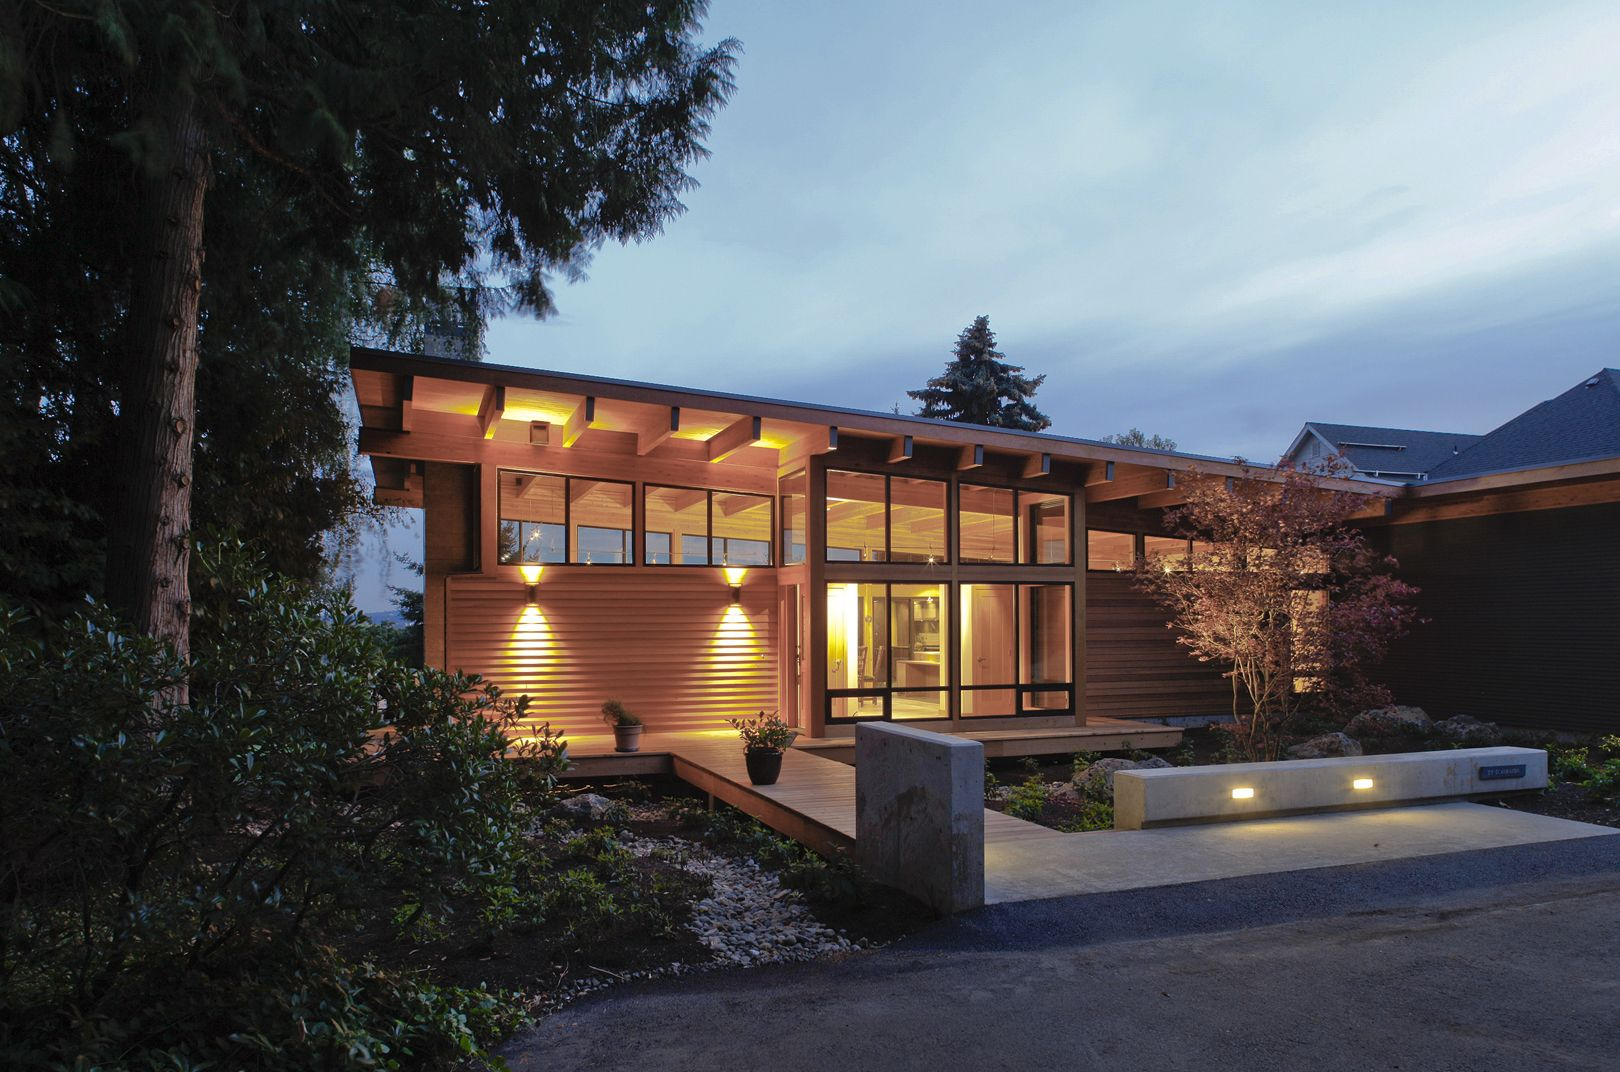 Vancouver airport home pacific northwest modern home for Pnw home builders